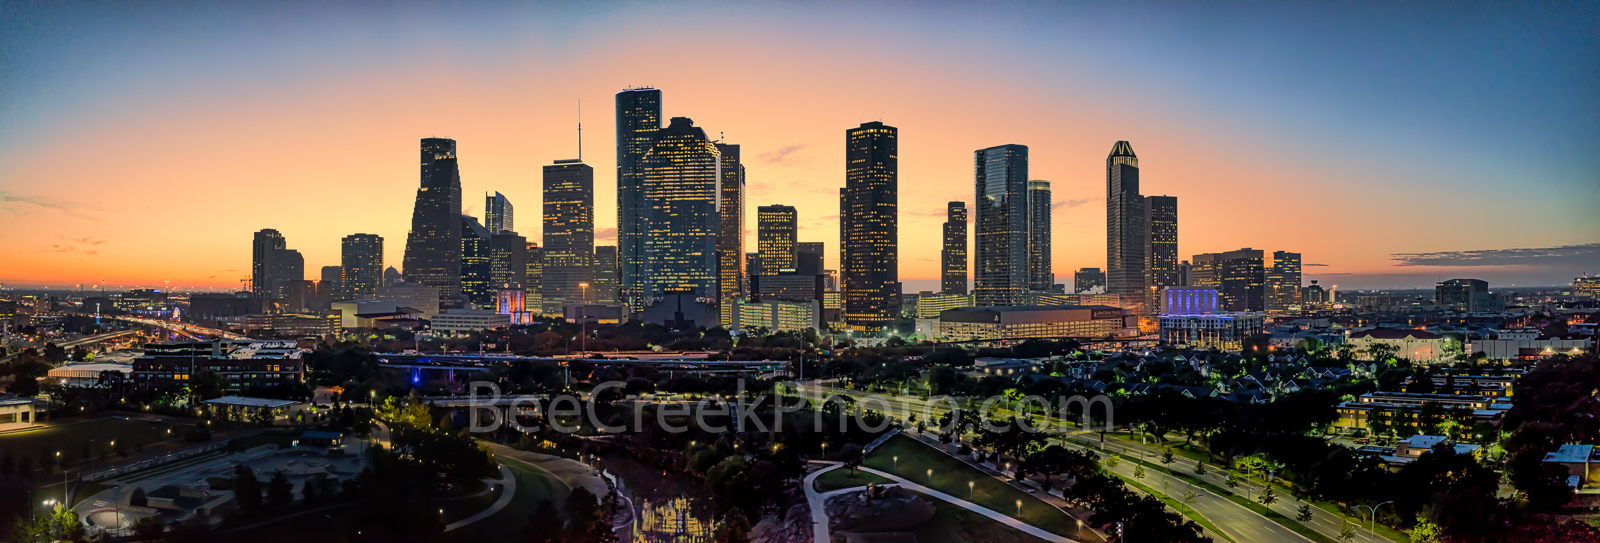 Houston skyline, Sunrise, glow, pano, panorama, Buffalo Bayou, skylines, Houston cityscape, cityscapes, downtown, reflections, pinks, oranges, sky, morning, city views, city, cities, high rise, Housto, photo